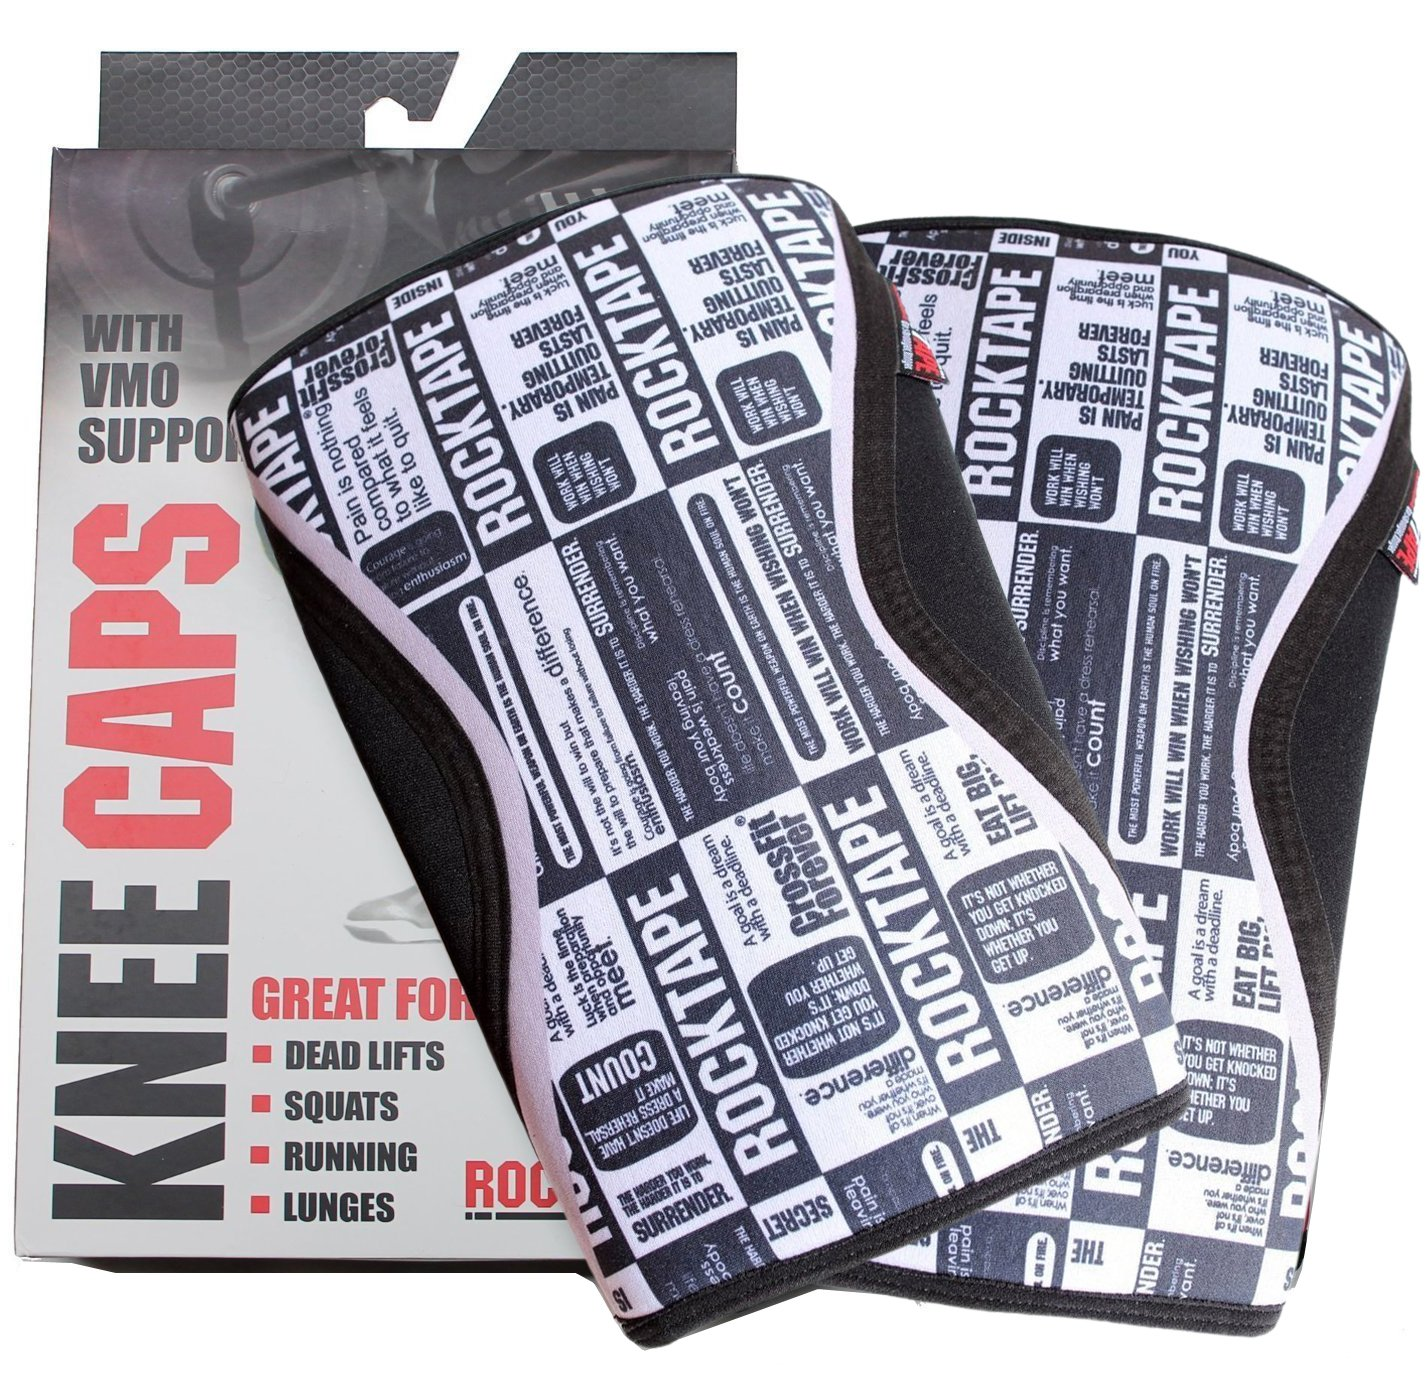 Rocktape Knee Sleeves, 2-Pack, Competition Grade, 5mm Thickness, Compression Neoprene, Extra Long for VMO Support, Manifesto, M